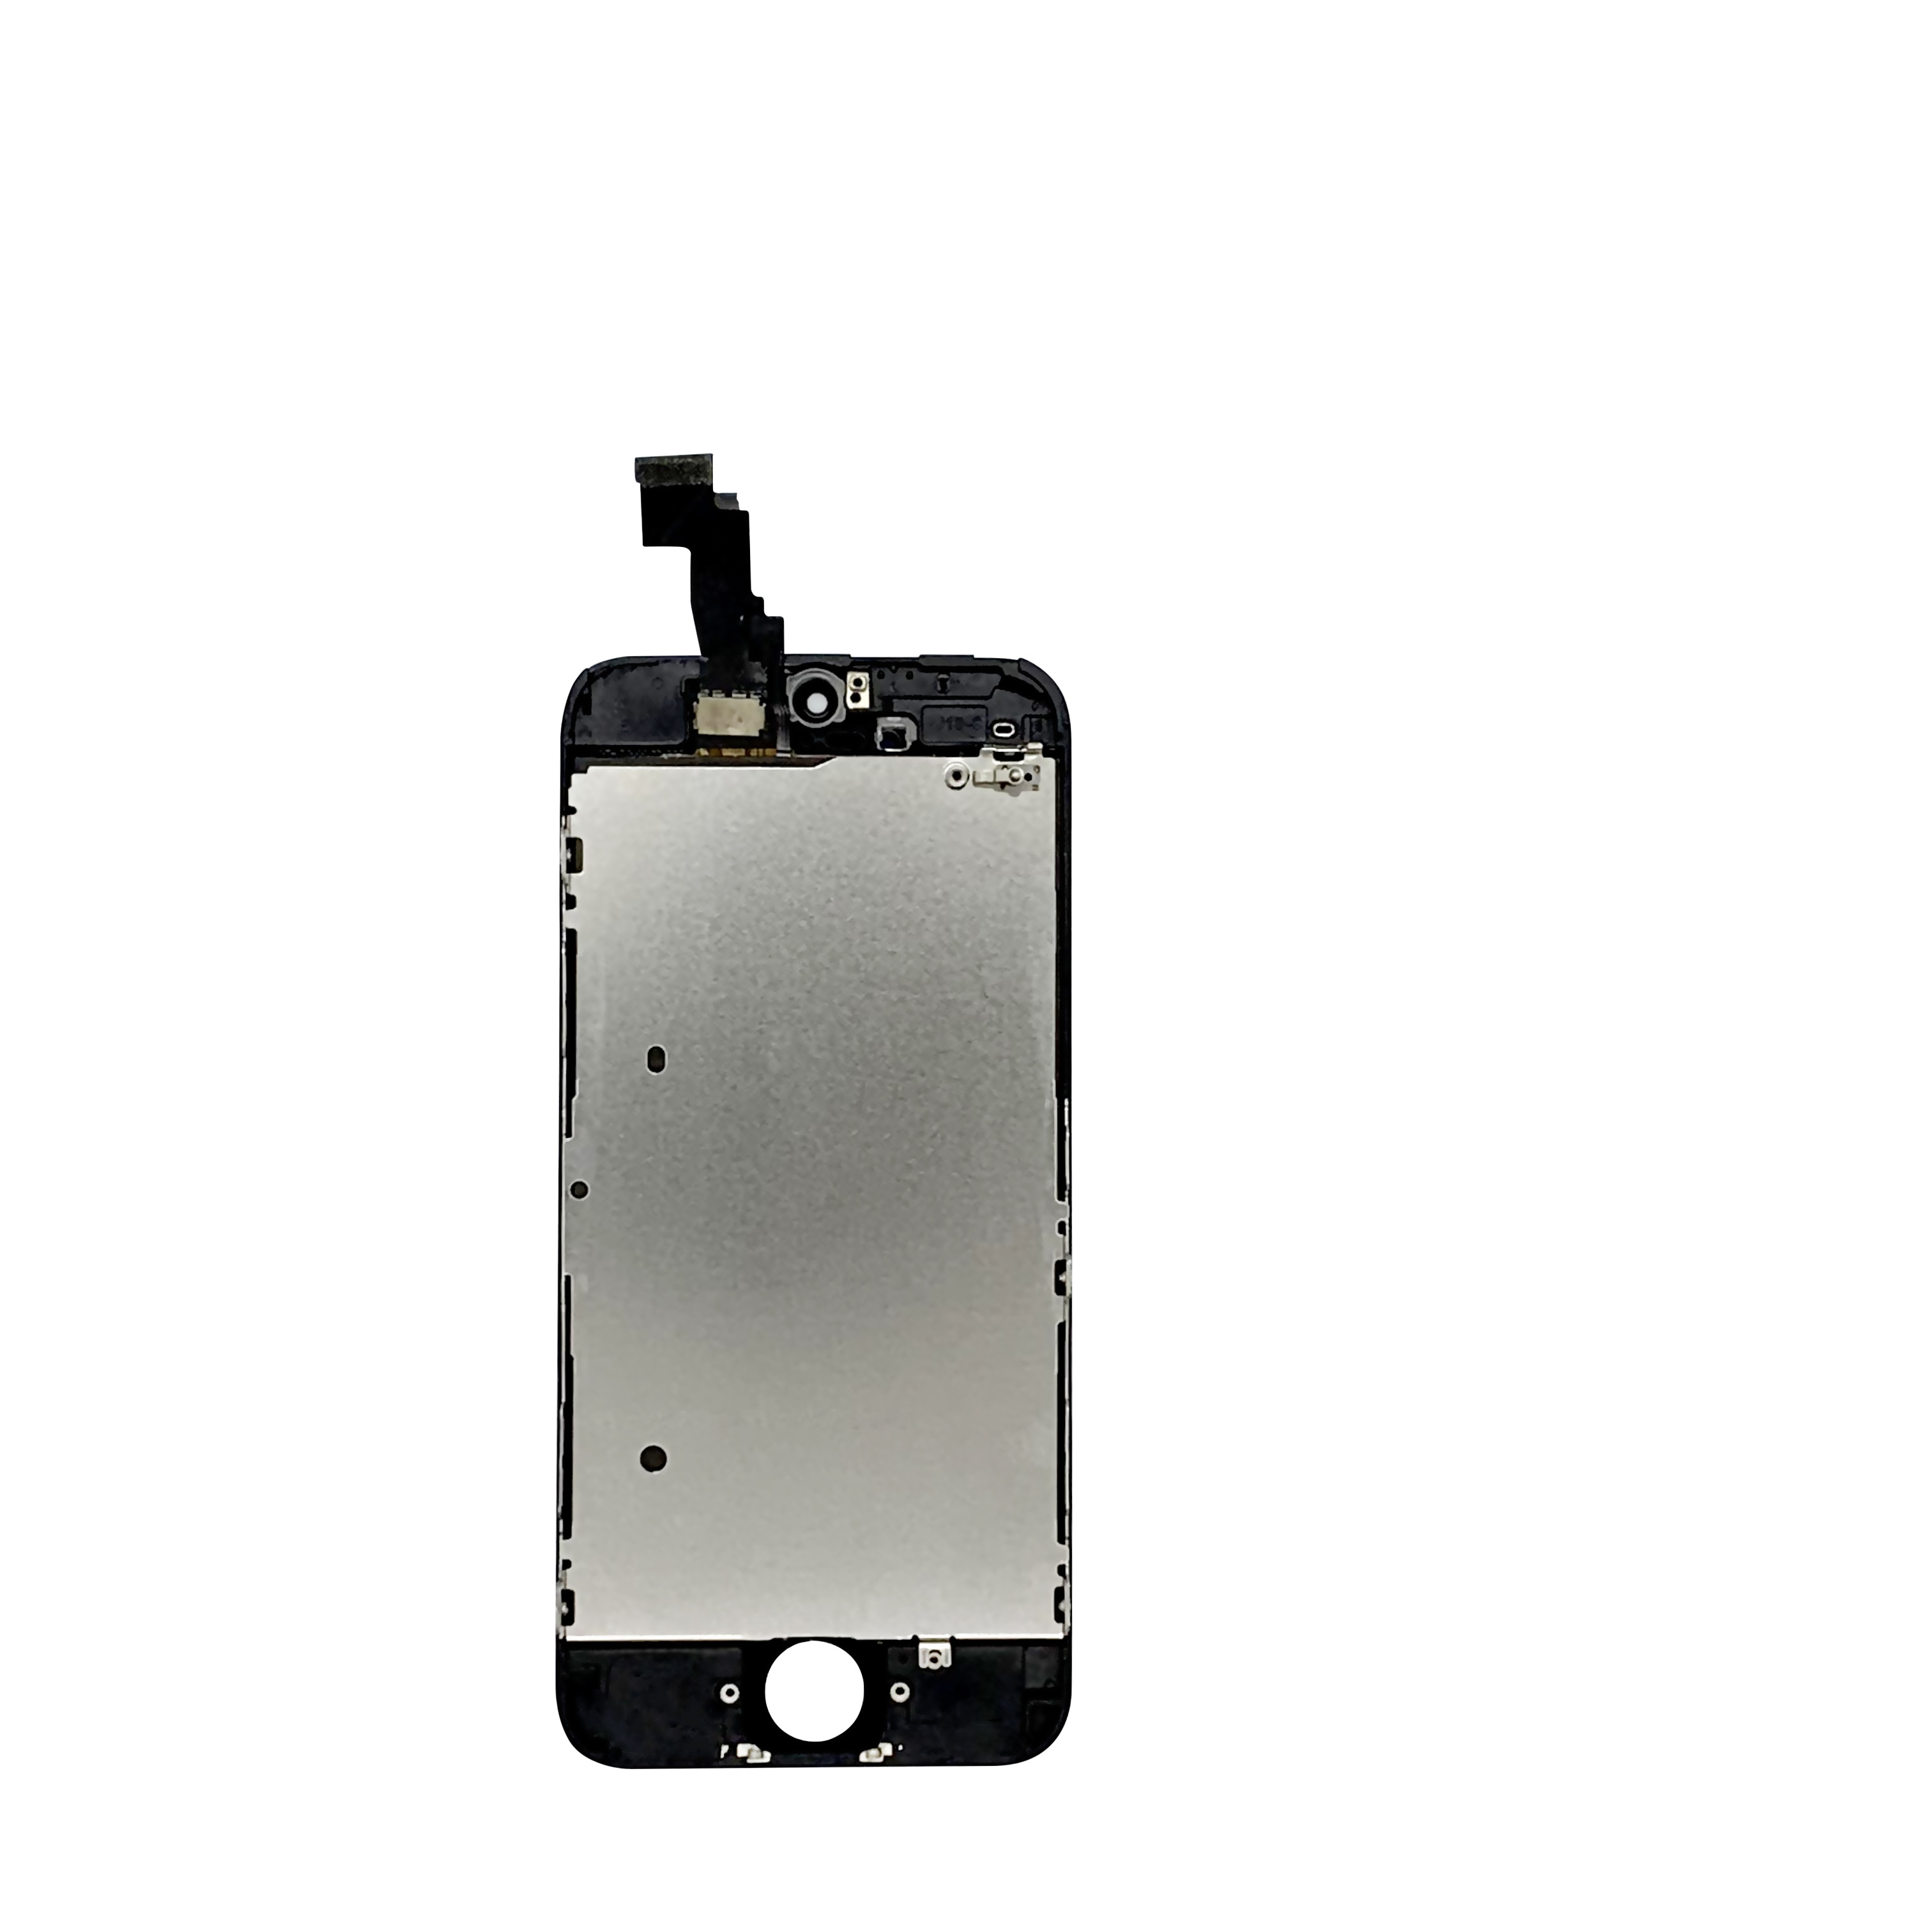 5Pcs LCD Screen For Apple iPhone 5 5G 5s 5c LCD Display Touch Screen Digitizer Replacement with back plate enlarge